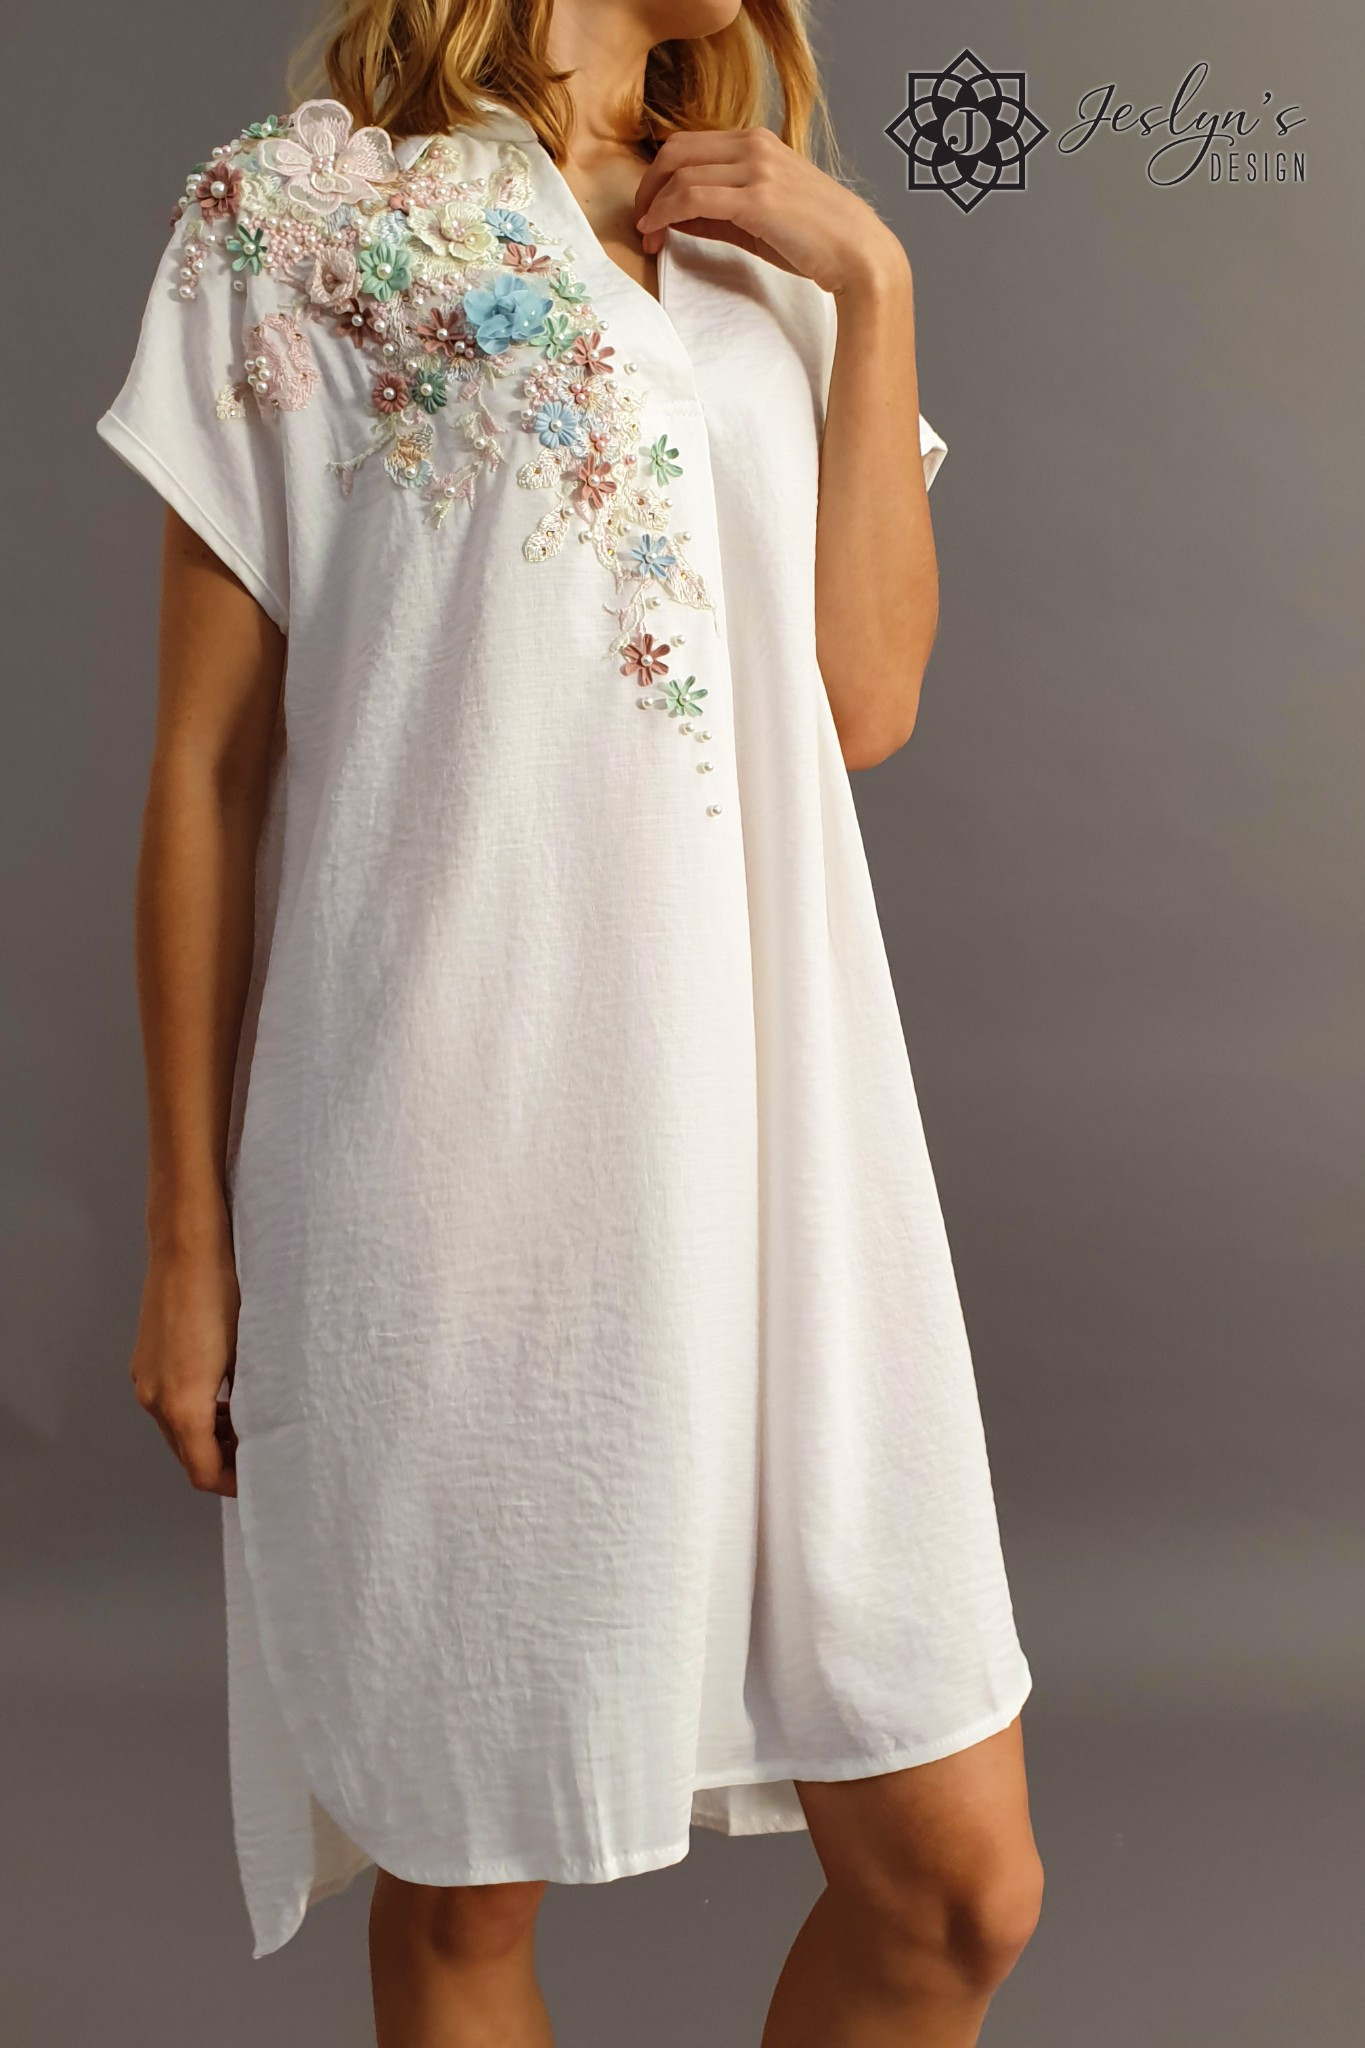 White shirt dress with 3D flowers D50J